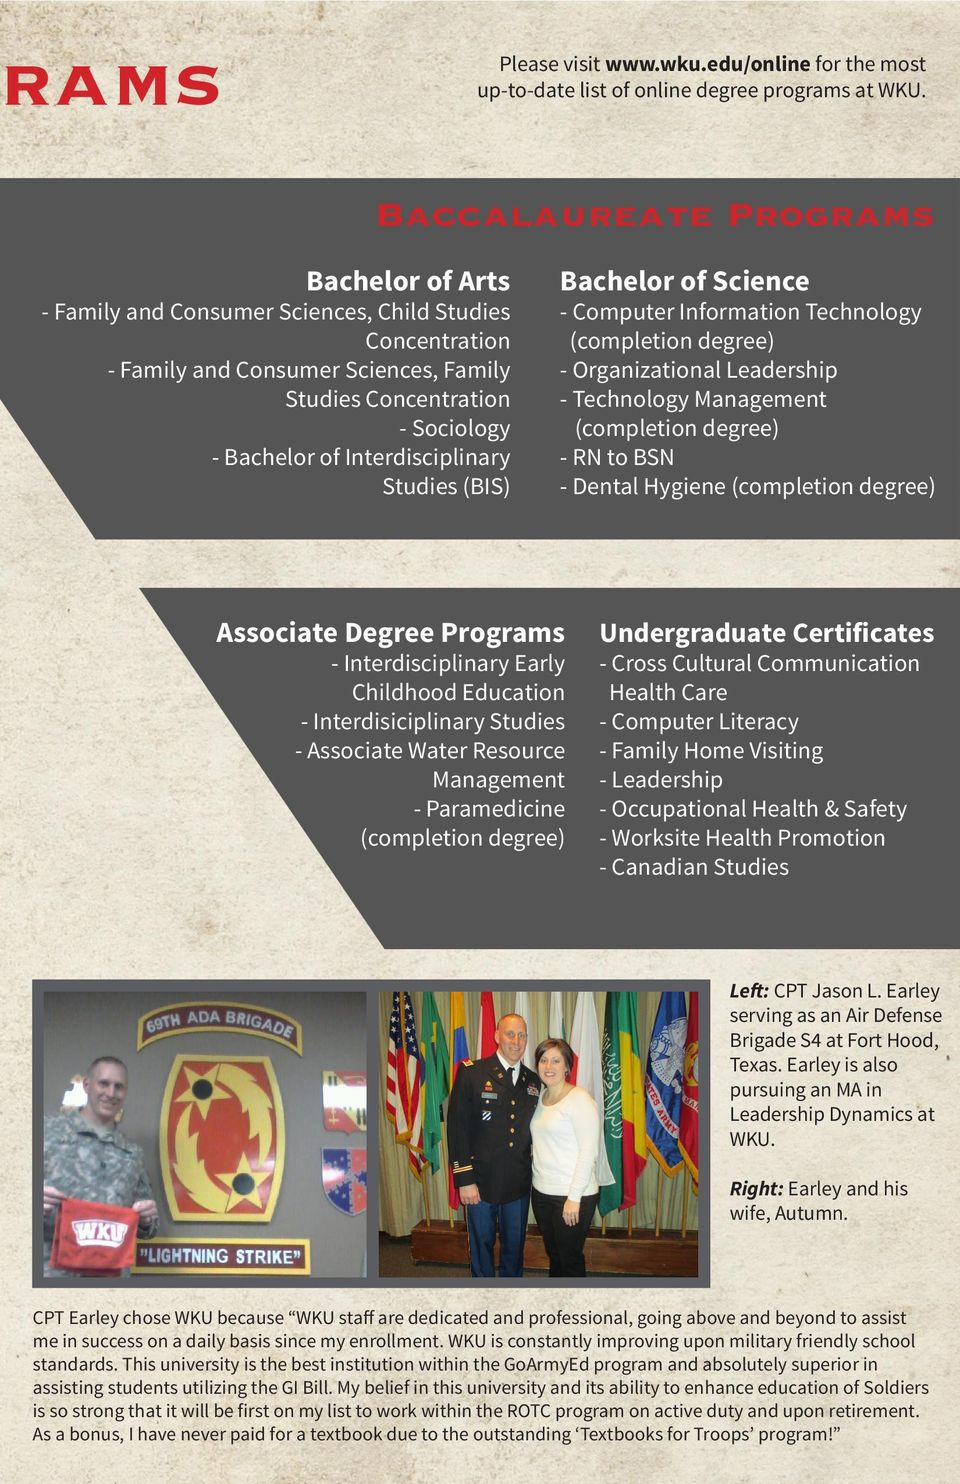 Interdisciplinary Studies (BIS) Bachelor of Science - Computer Information Technology (completion degree) - Organizational Leadership - Technology Management (completion degree) - RN to BSN - Dental